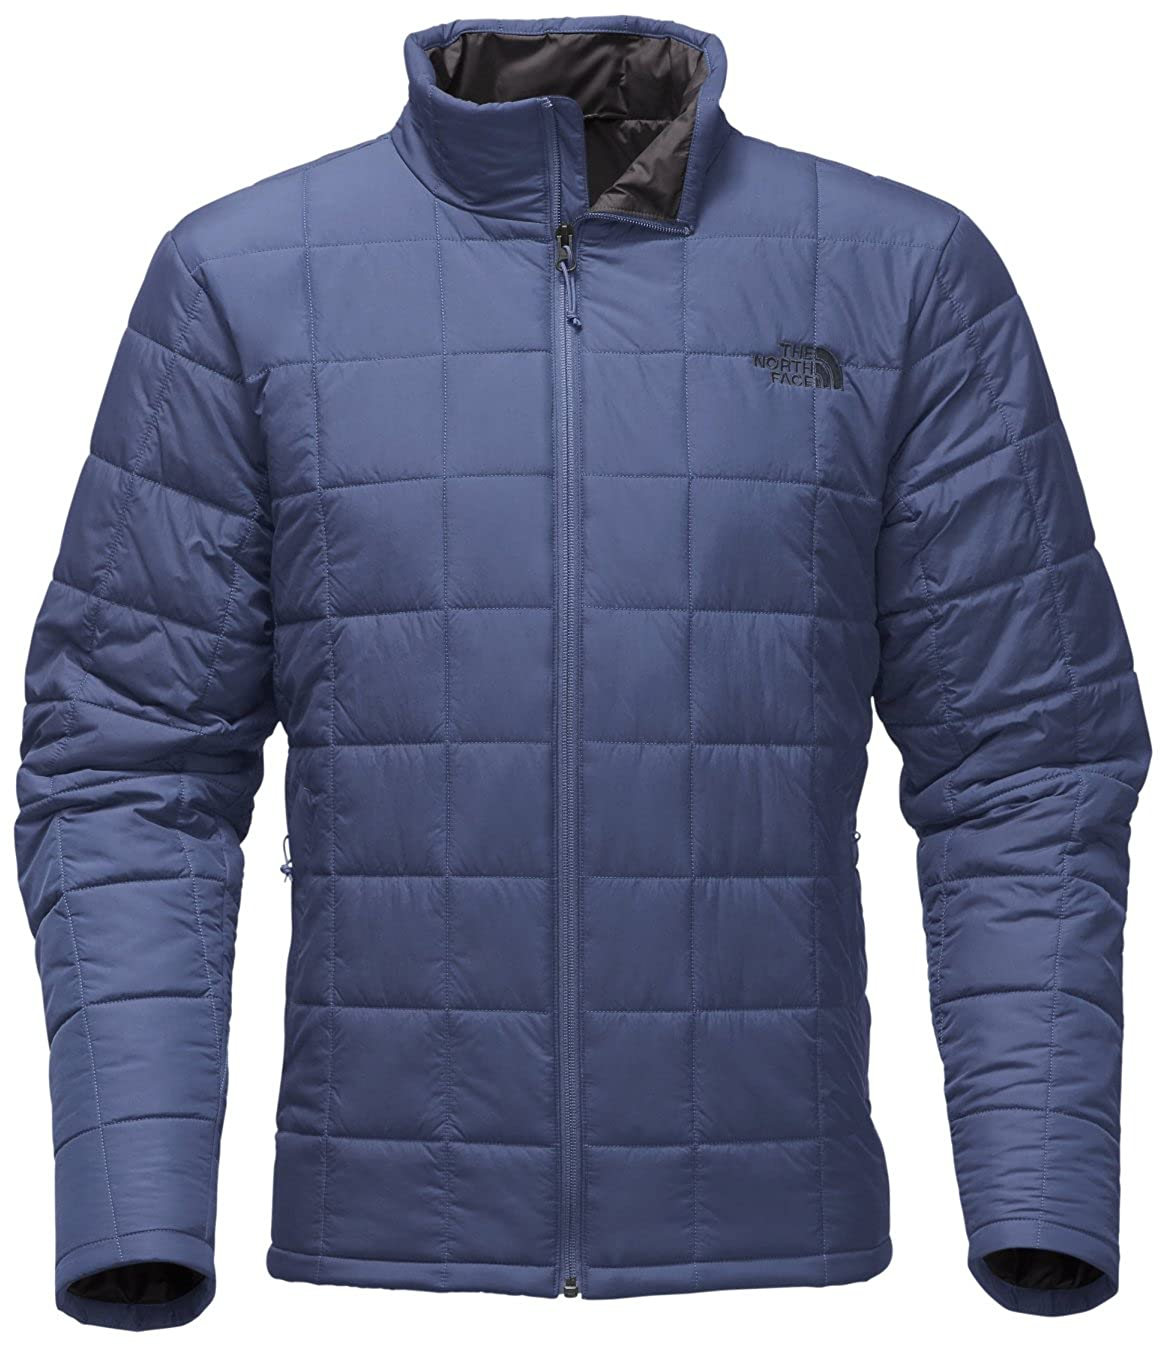 b127fe301 The North Face Men's Harway Jacket